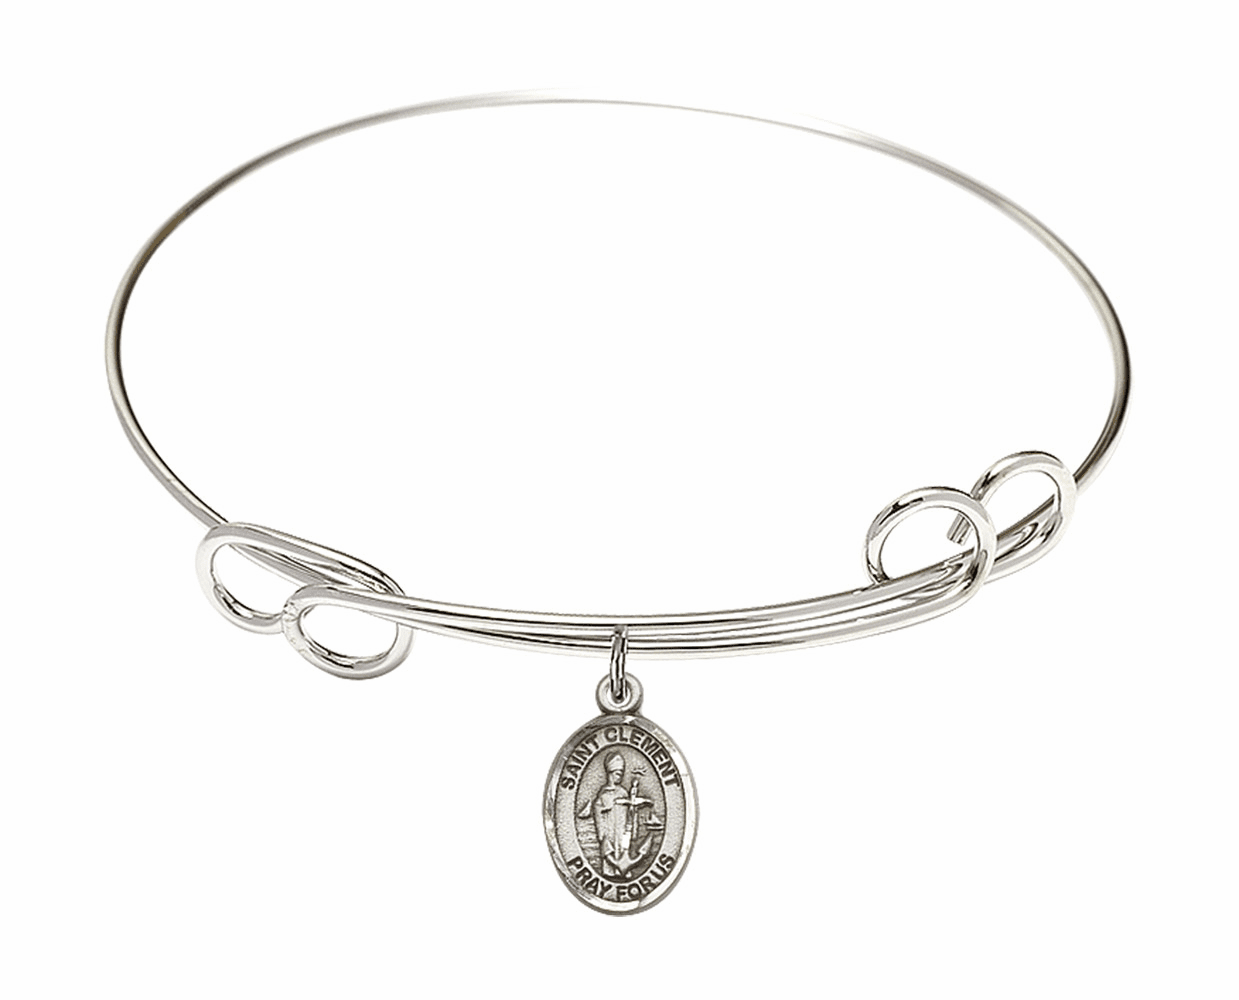 Round Loop St Clement Bangle Charm Bracelet by Bliss